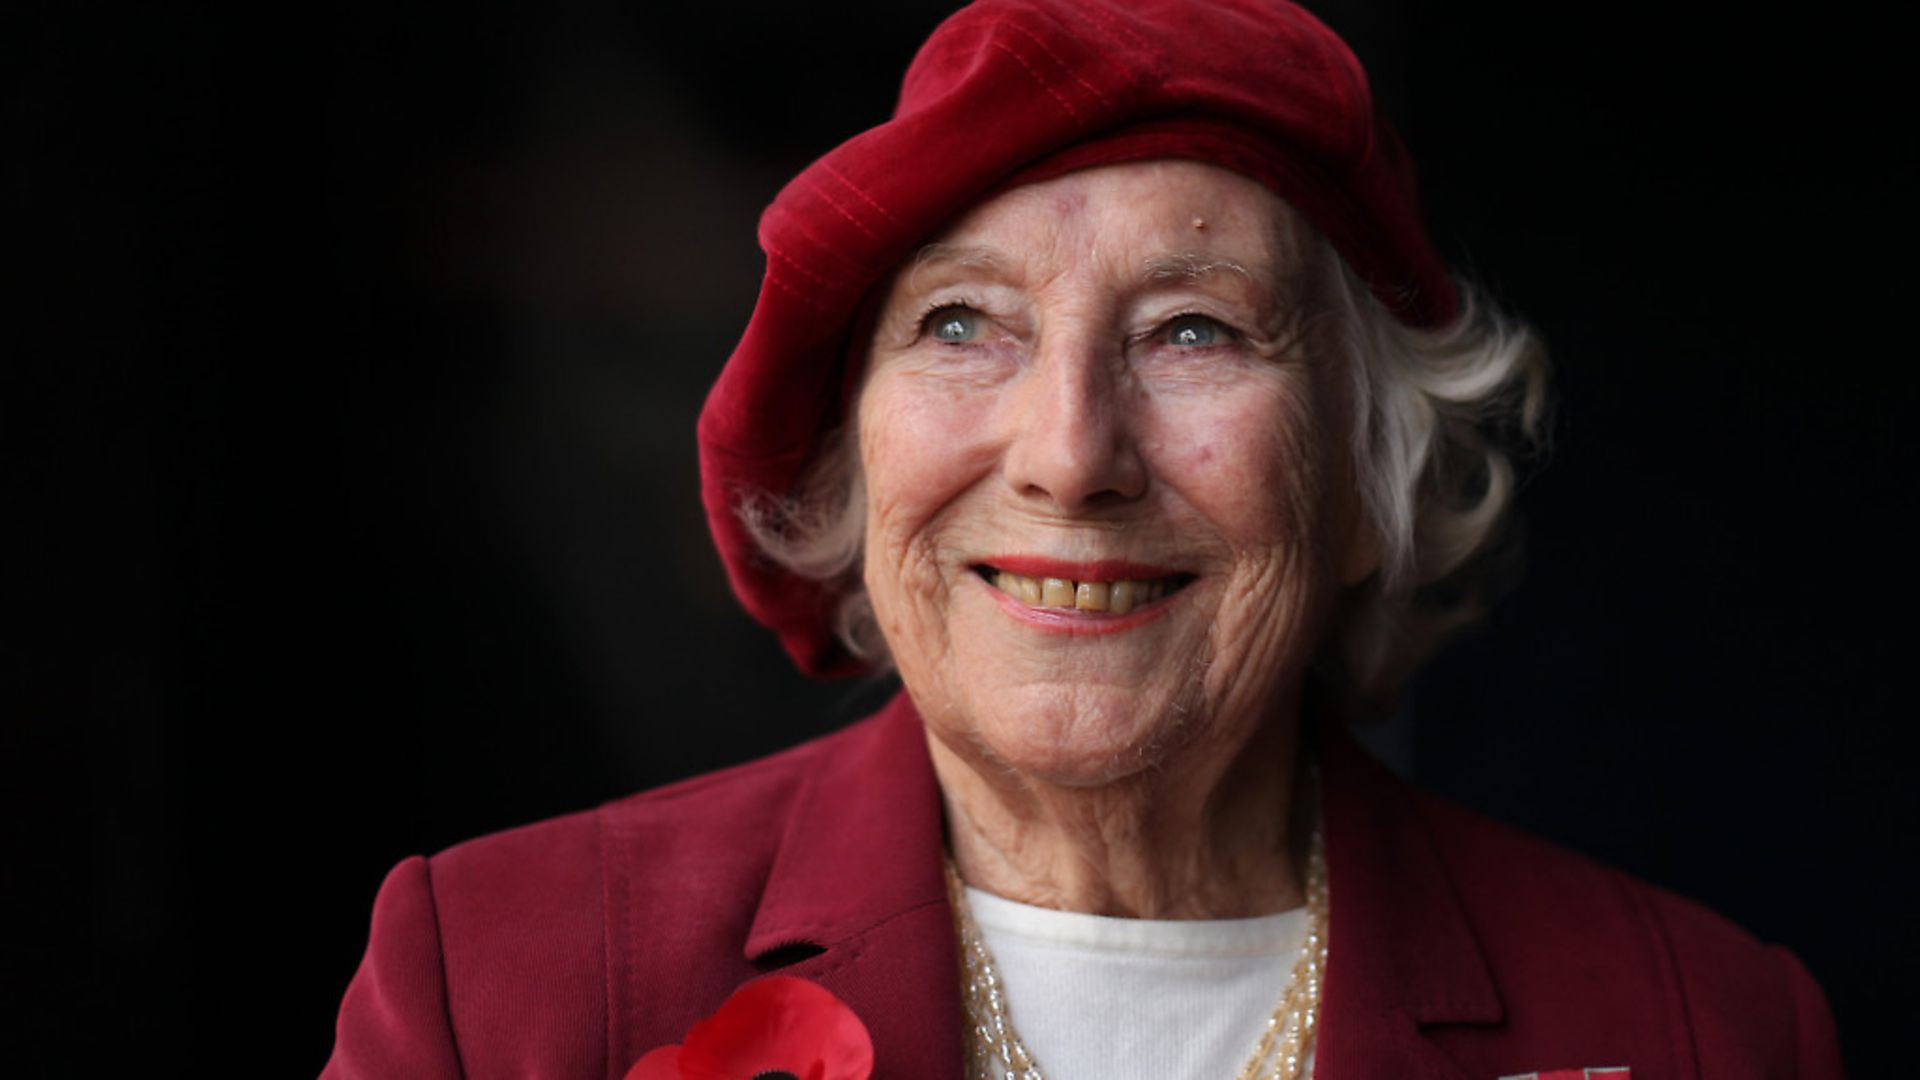 Forces sweetheart Dame Vera Lynn poses for photographs in central London, on October 22, 2009. Picture: SHAUN CURRY/AFP via Getty Images - Credit: AFP via Getty Images